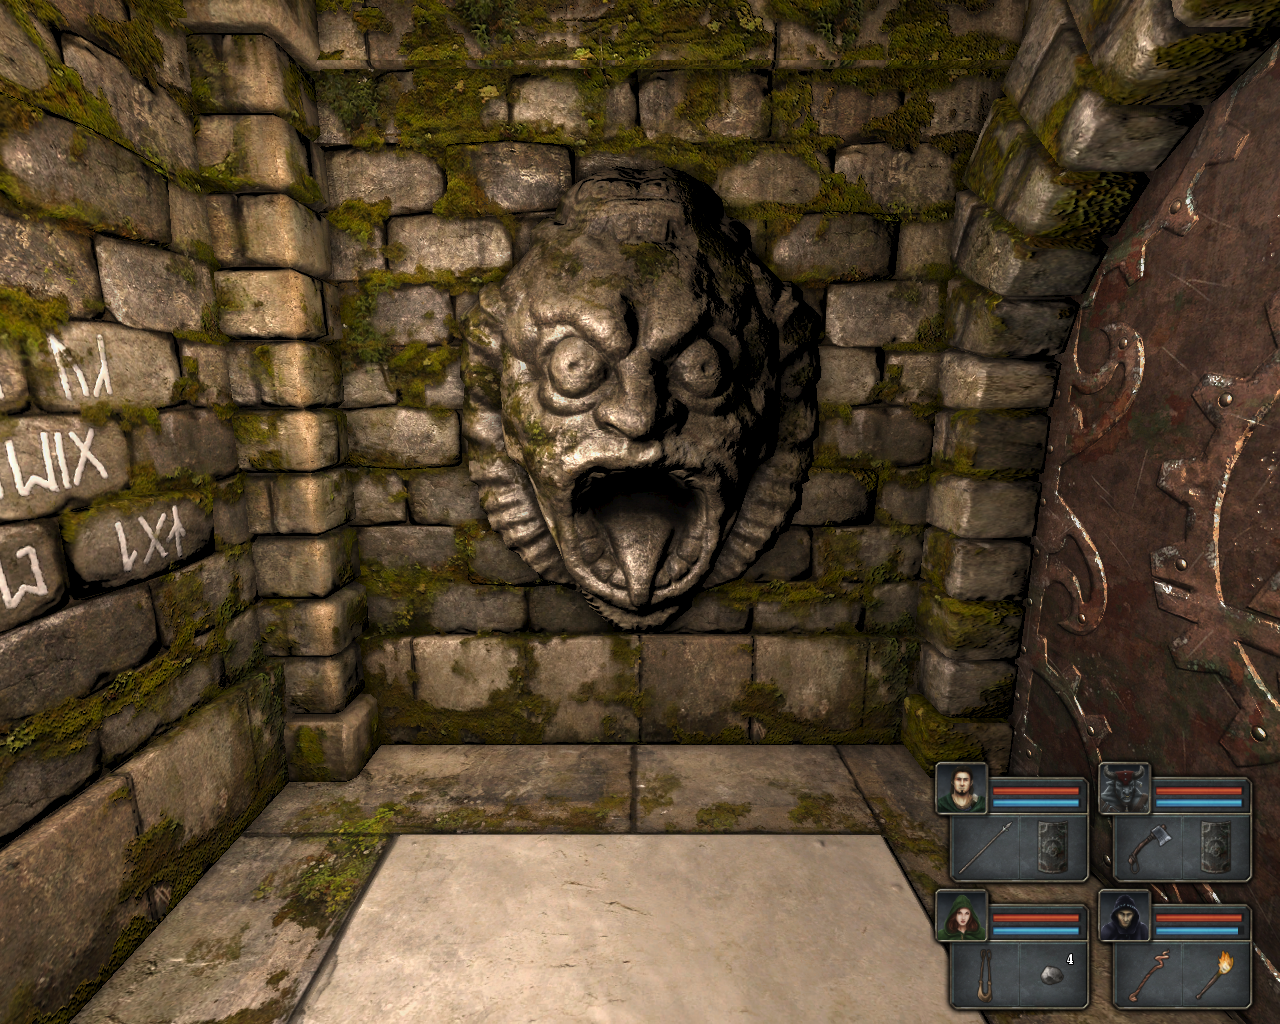 Legend of Grimrock Windows Stop staring at me, you ugly